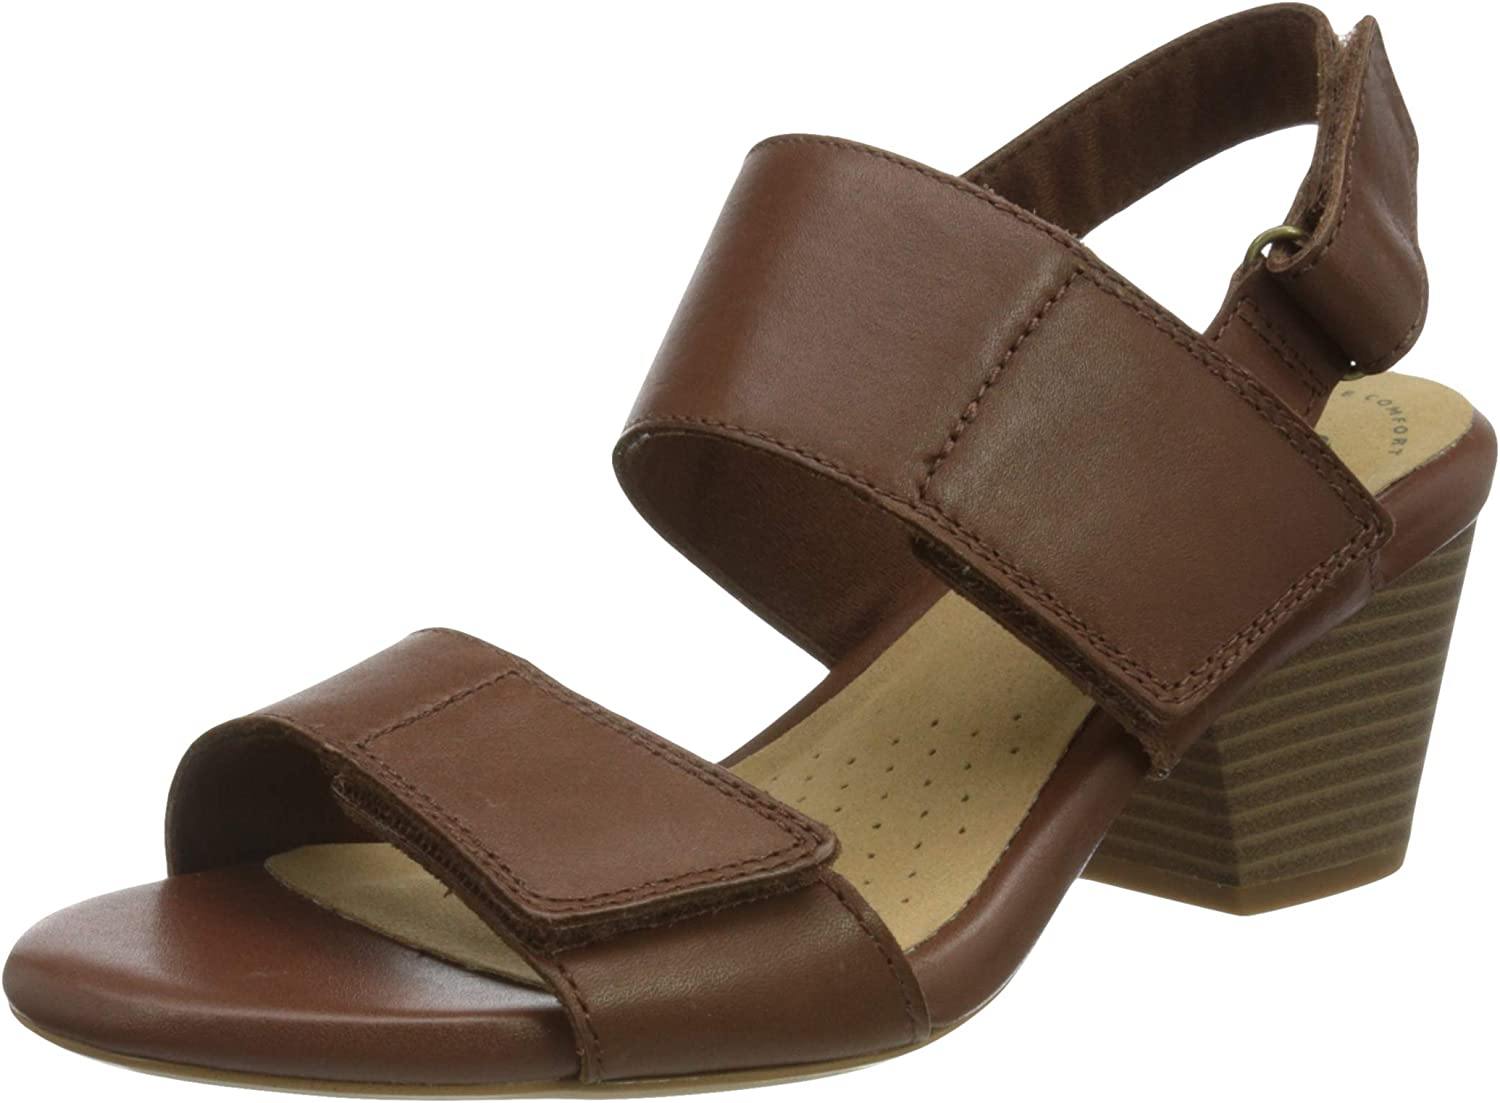 Clarks Girl's Challenge the lowest price of Japan ☆ Ankle-Strap Heeled Max 88% OFF Sandal